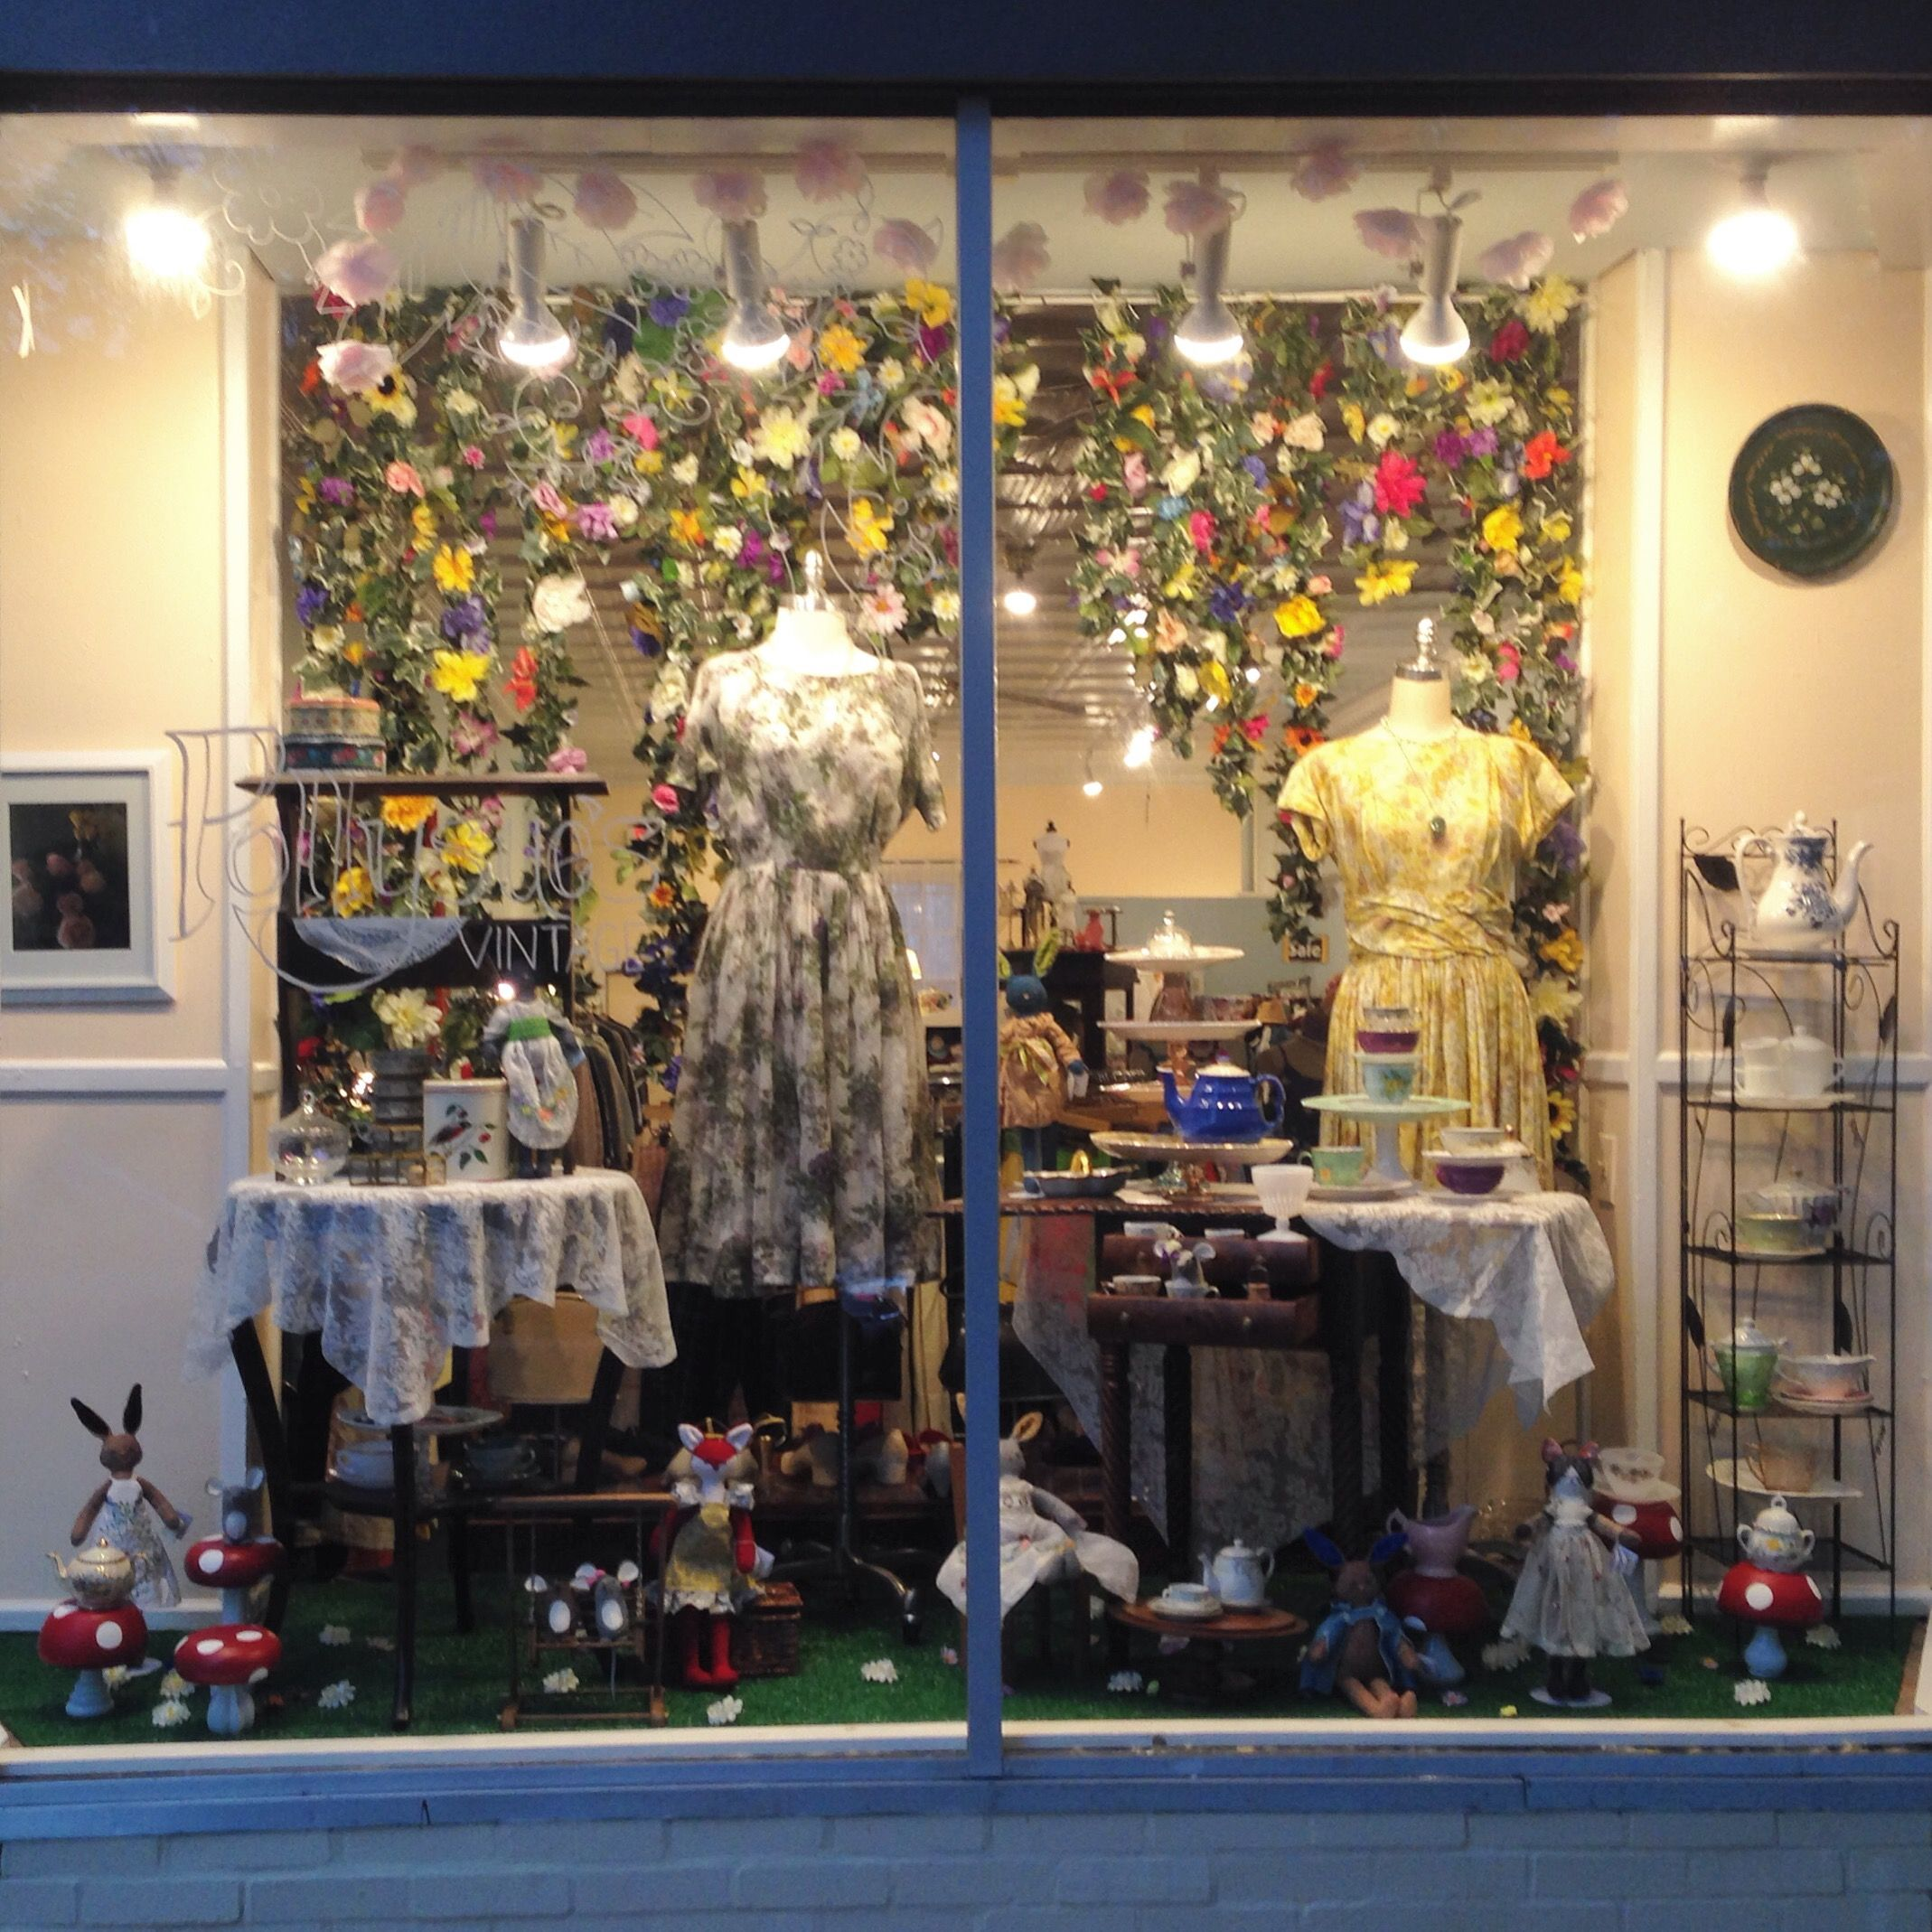 Garden party window at pollysues vintage takoma park md